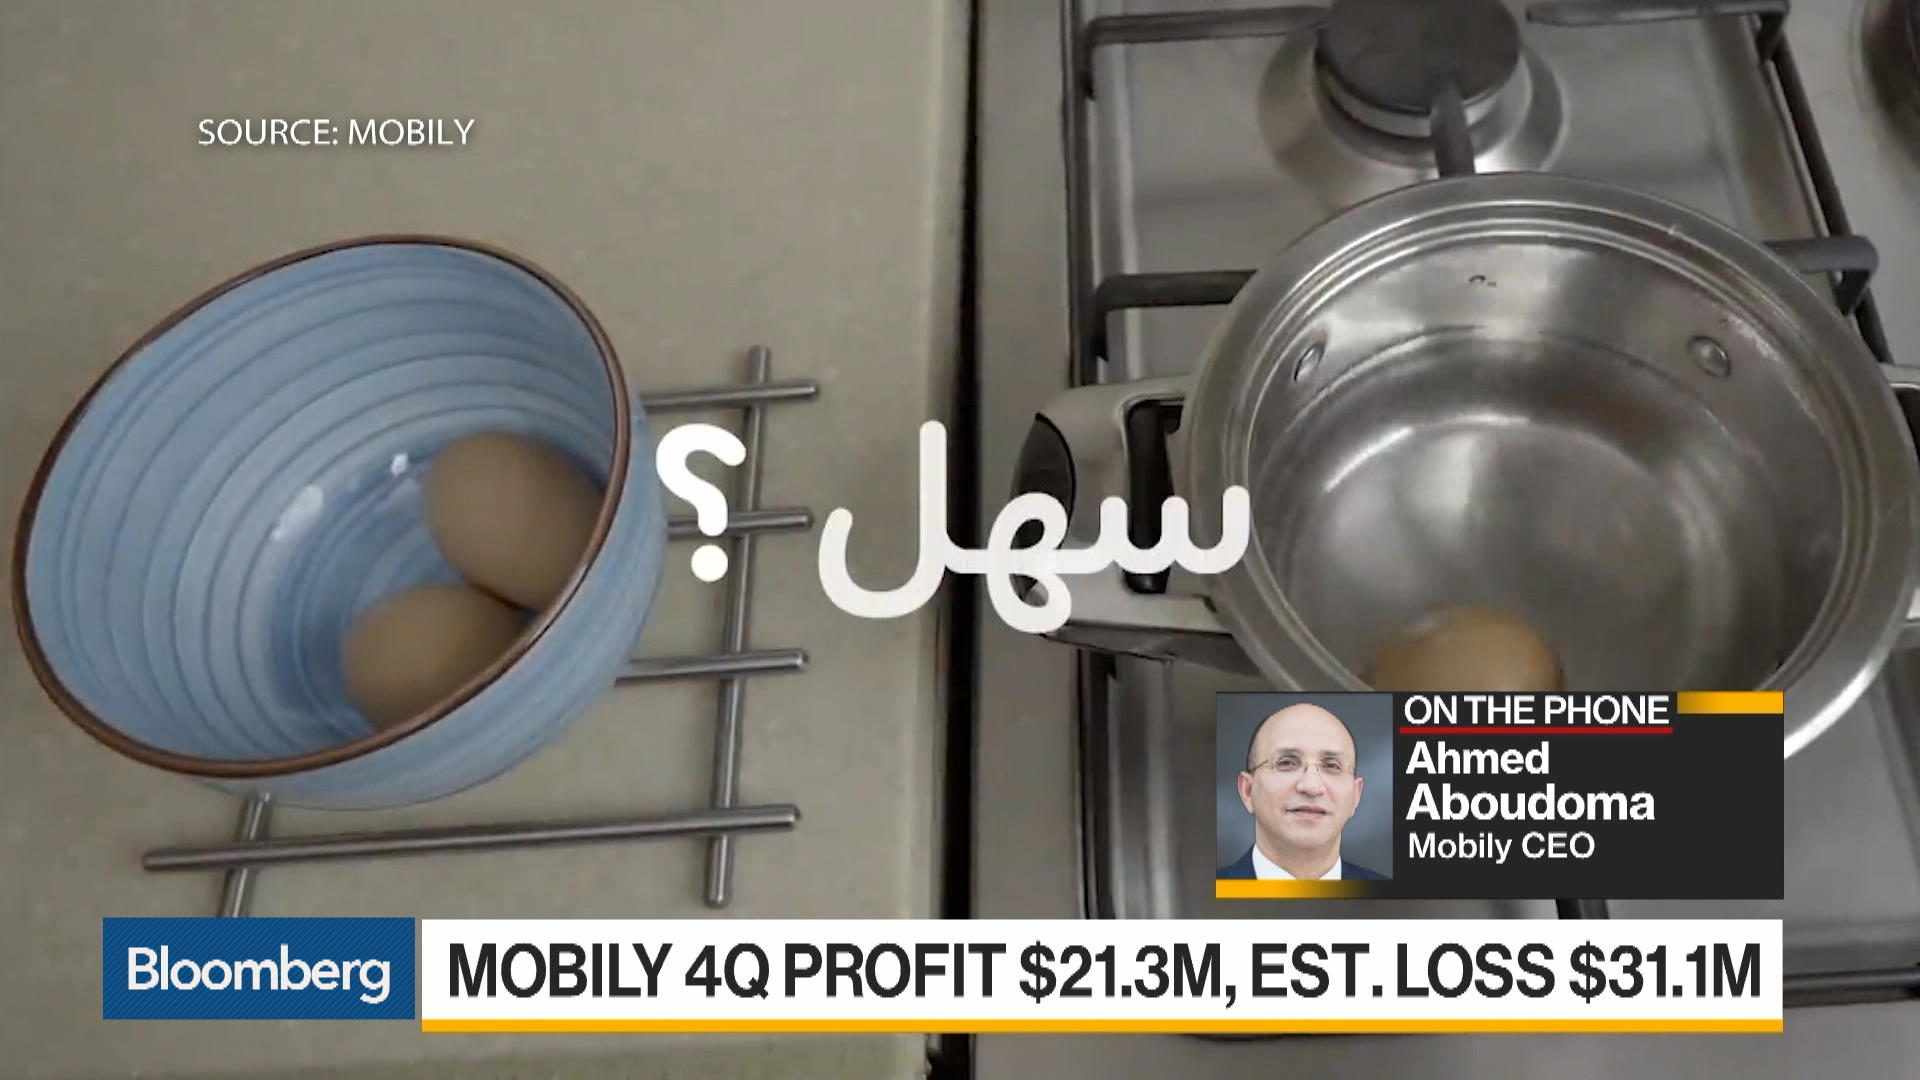 Mobily Has a Very Strong Cashflow Machine, CEO Says